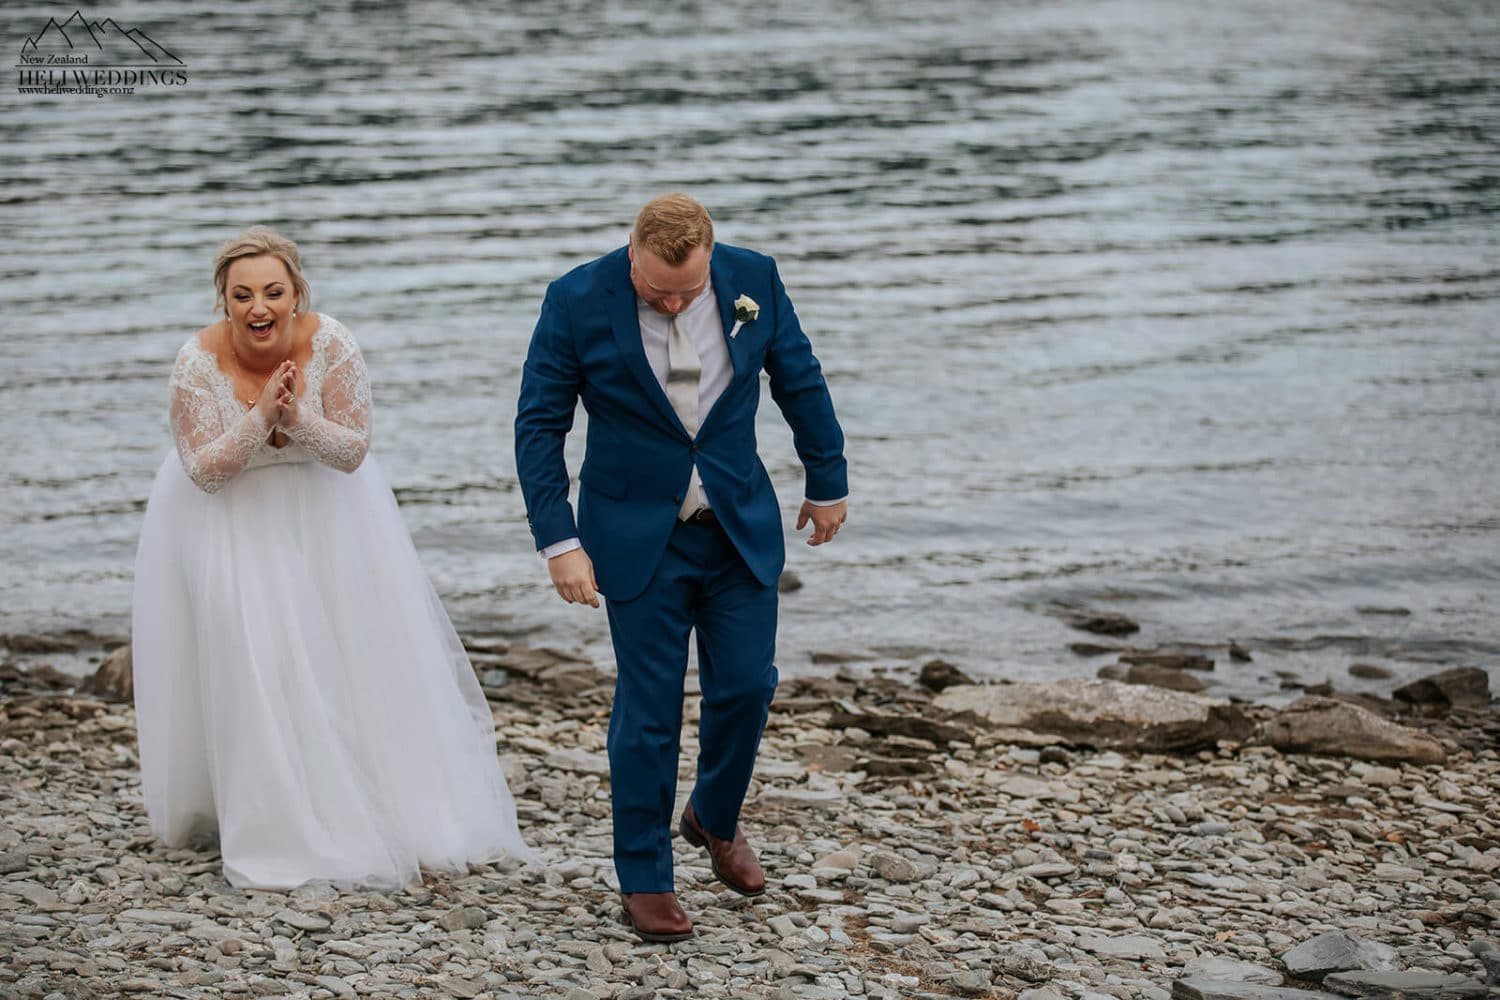 Elopement wedding in Queenstown New Zealand